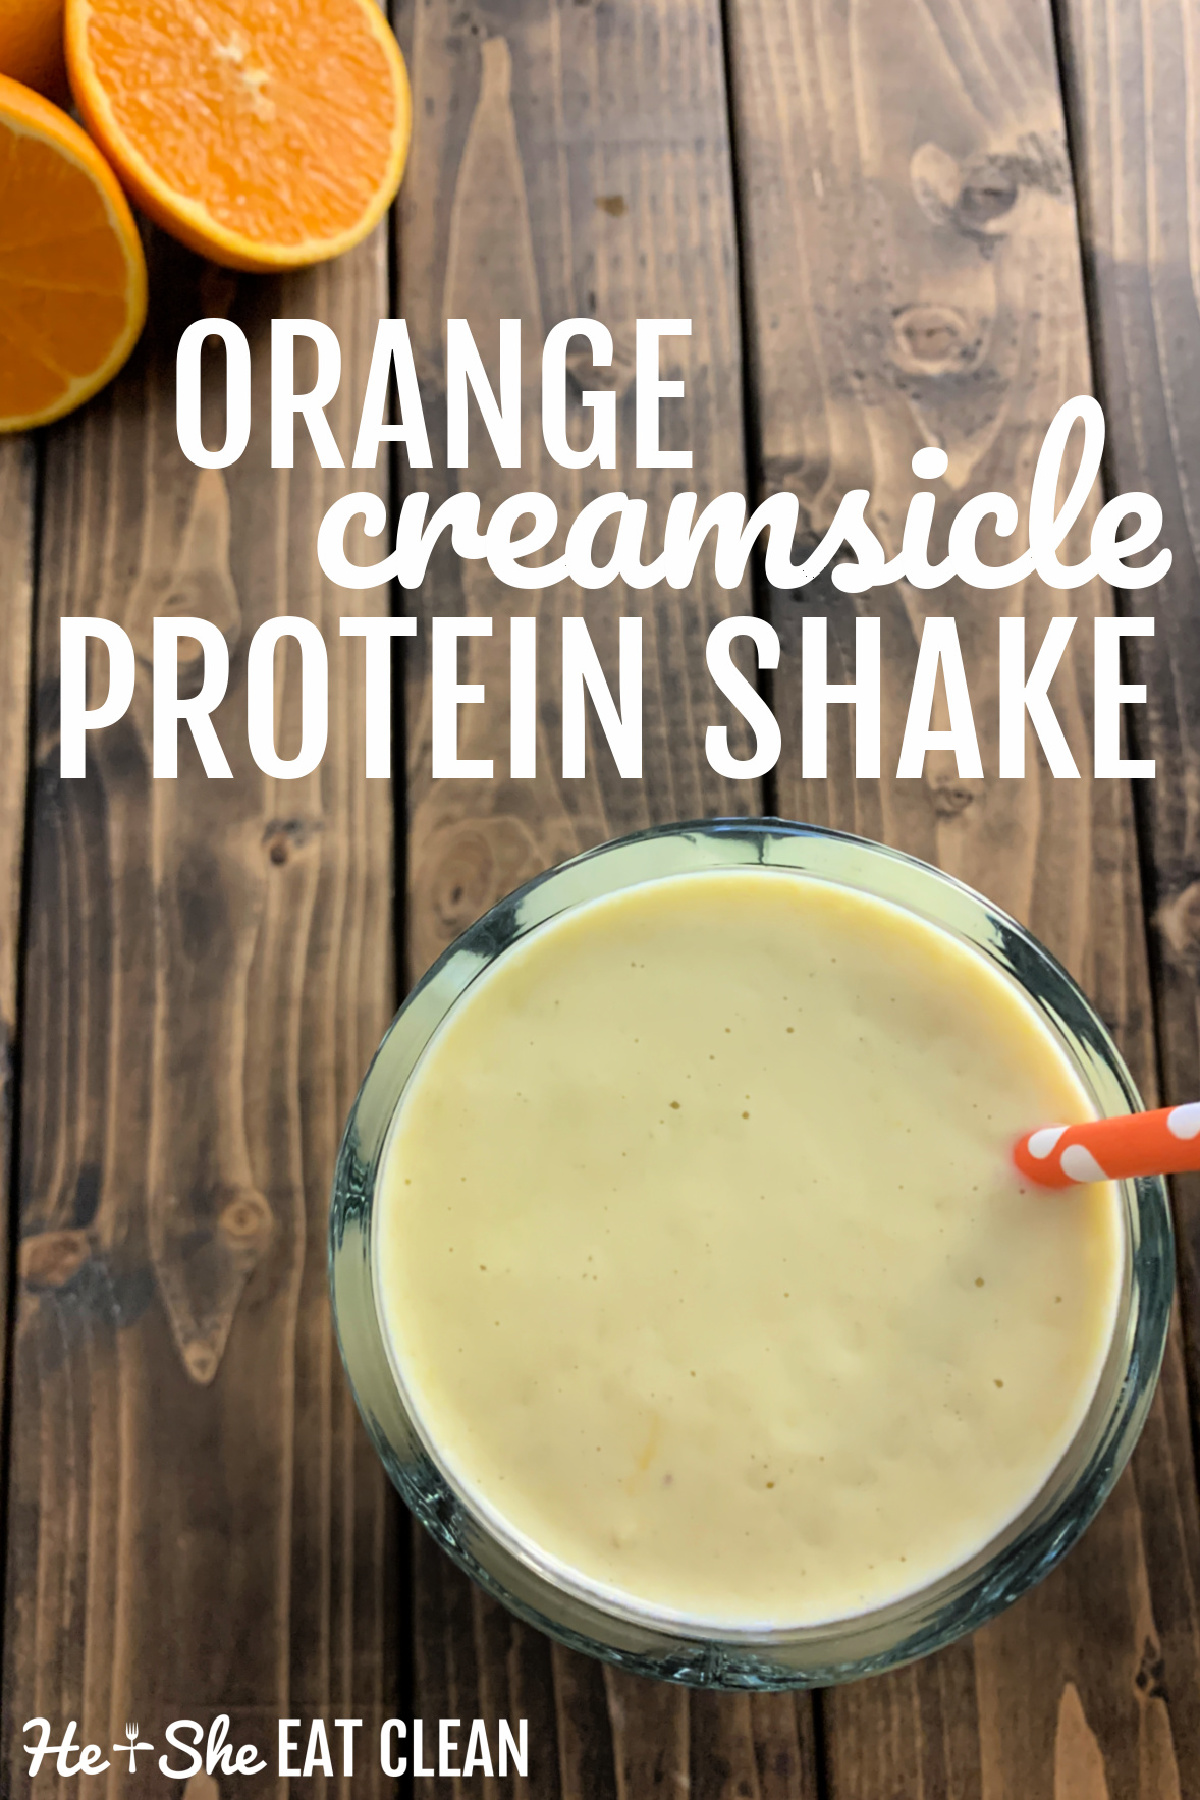 overhead view of protein shake in glass far with orange straw and a sliced orange in the background